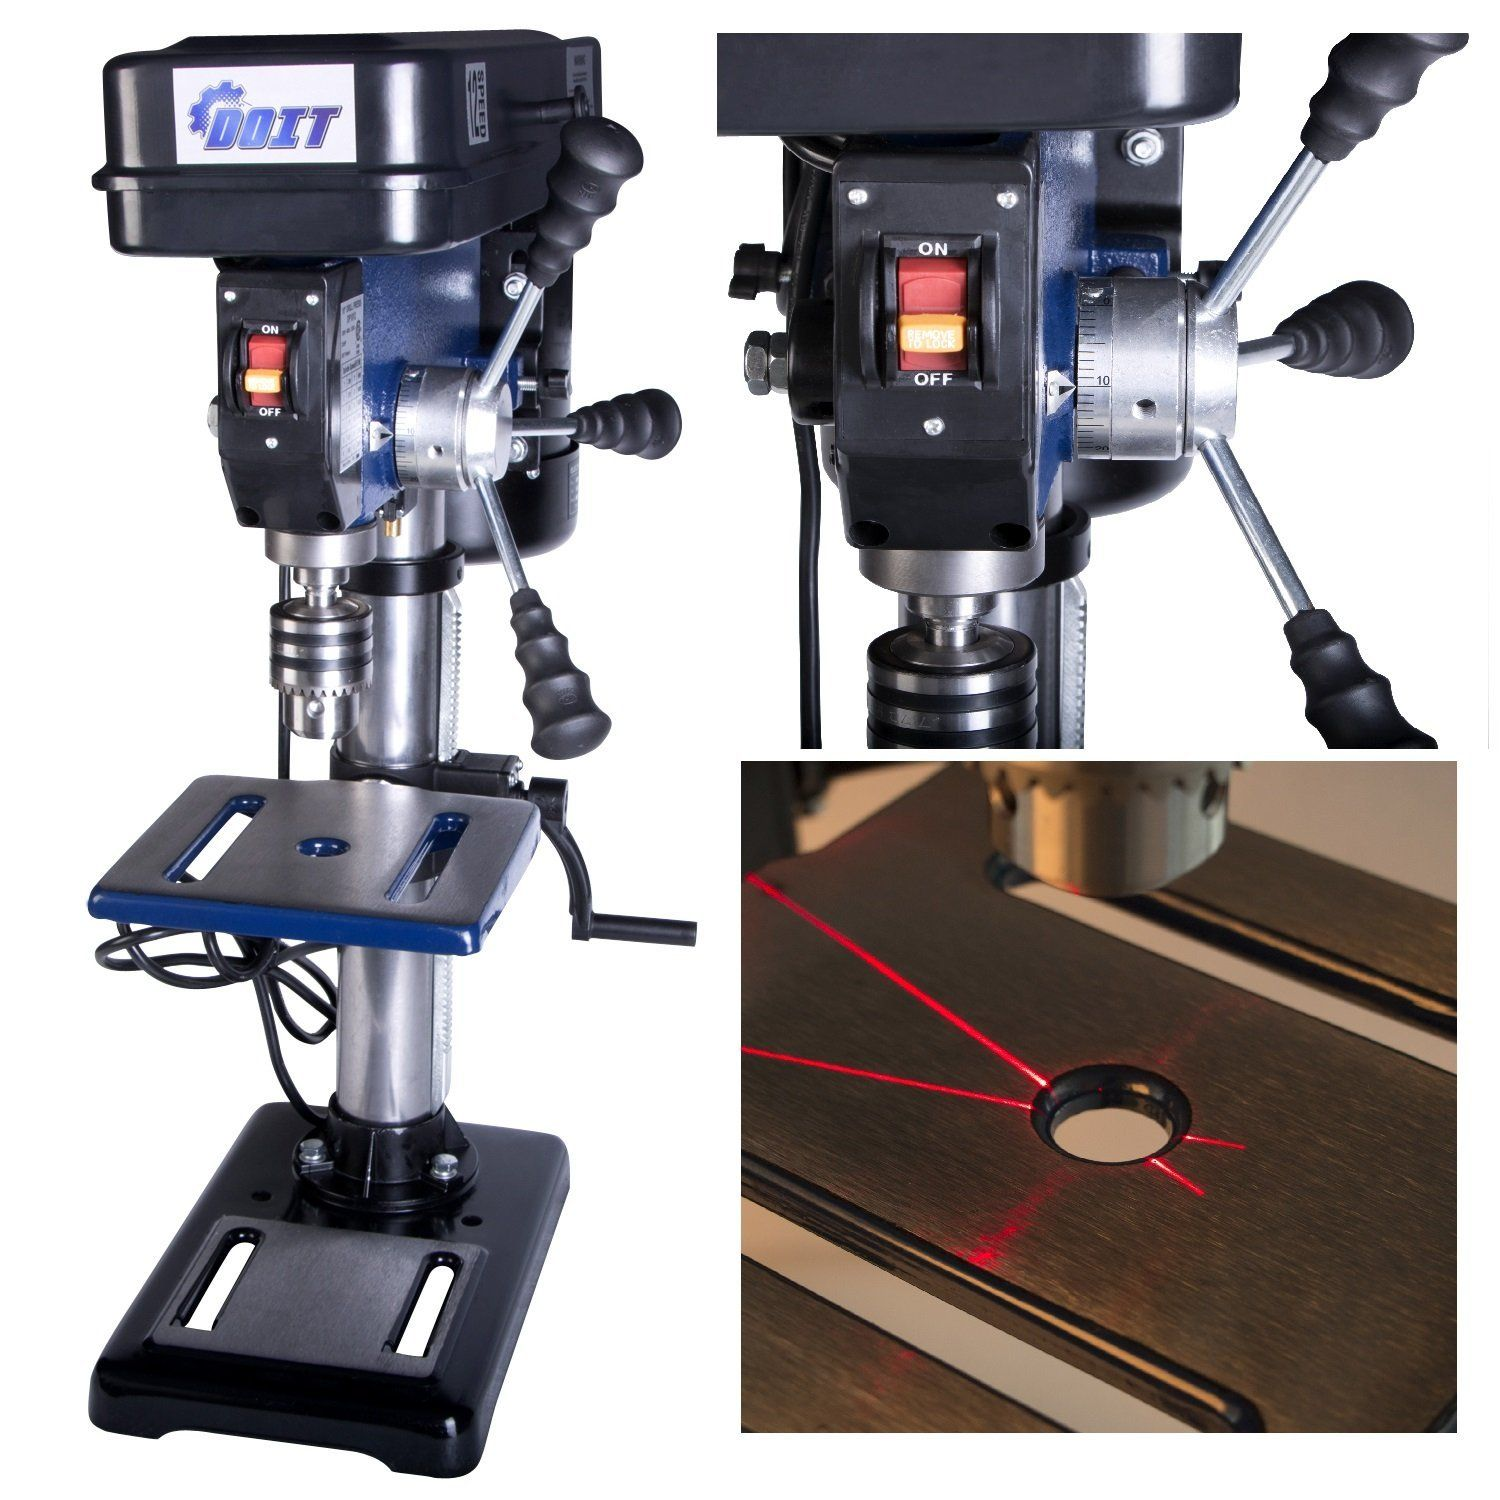 Doitpower 10 Inch 12 Speed Drill Press With Laser Trac 10 Inch 12 Speed Drill Press With Laser Drill Press Speed Drills Drill